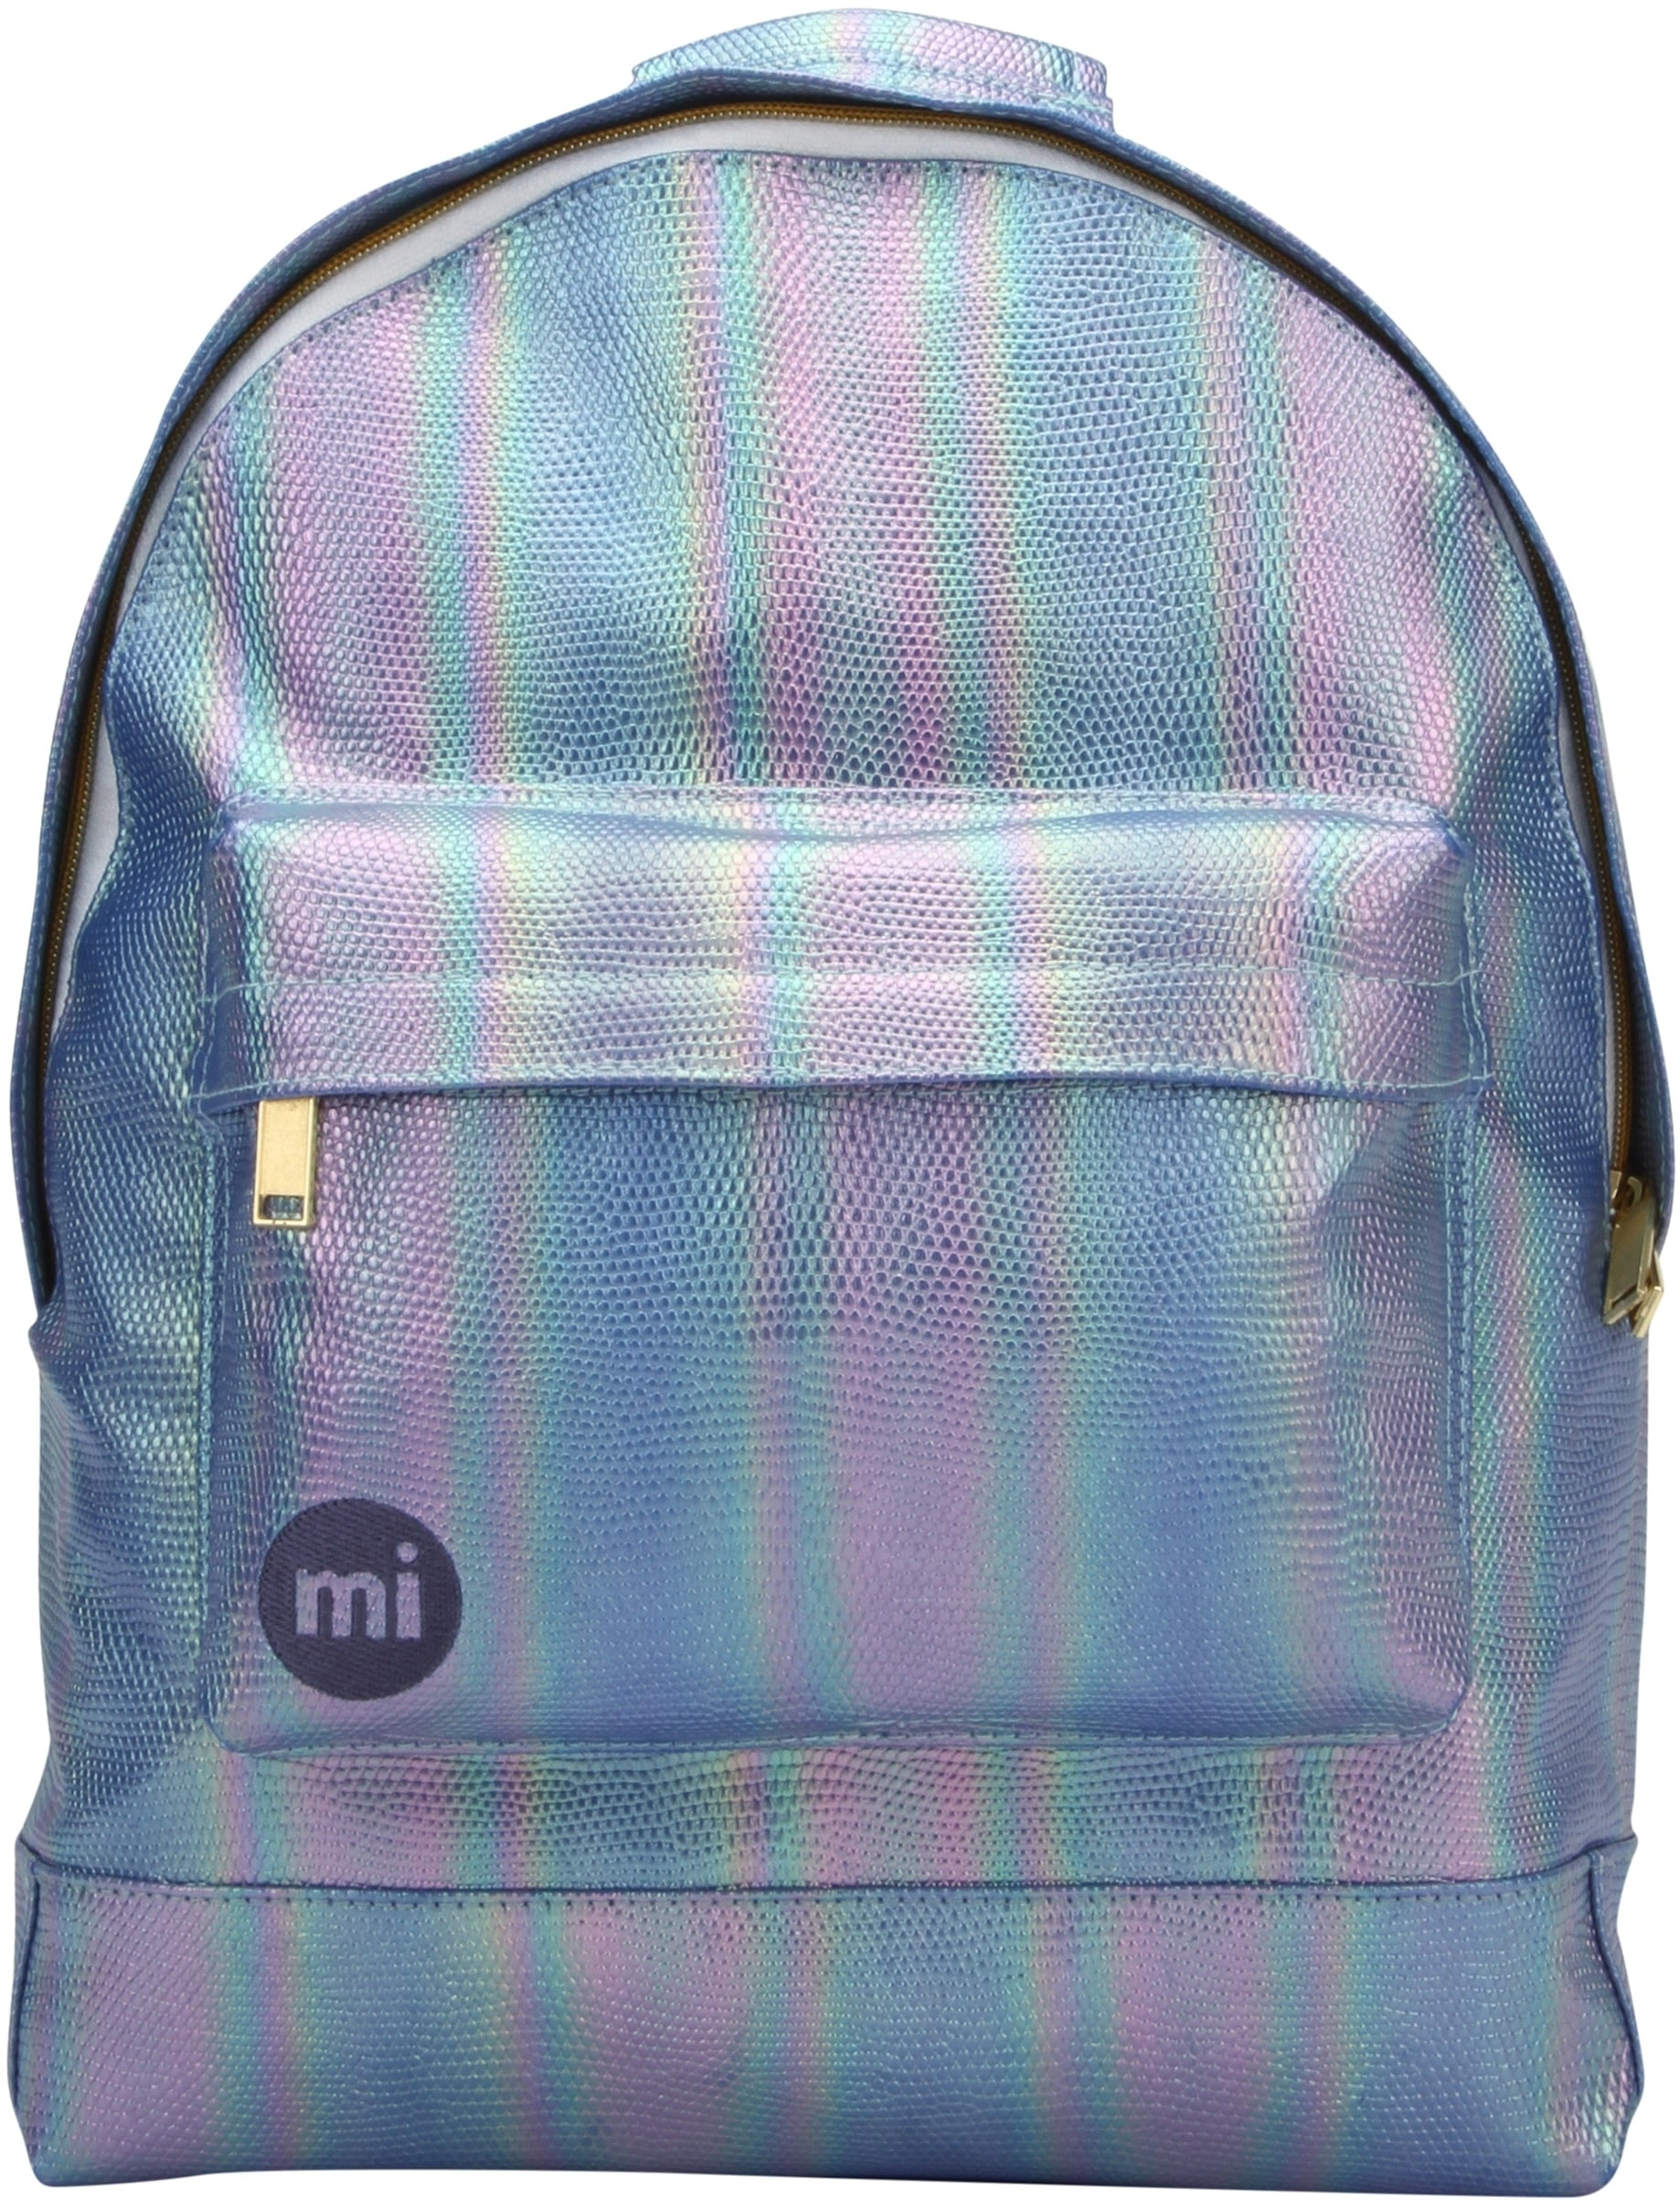 MiPac Mermaid Backpack  Blue